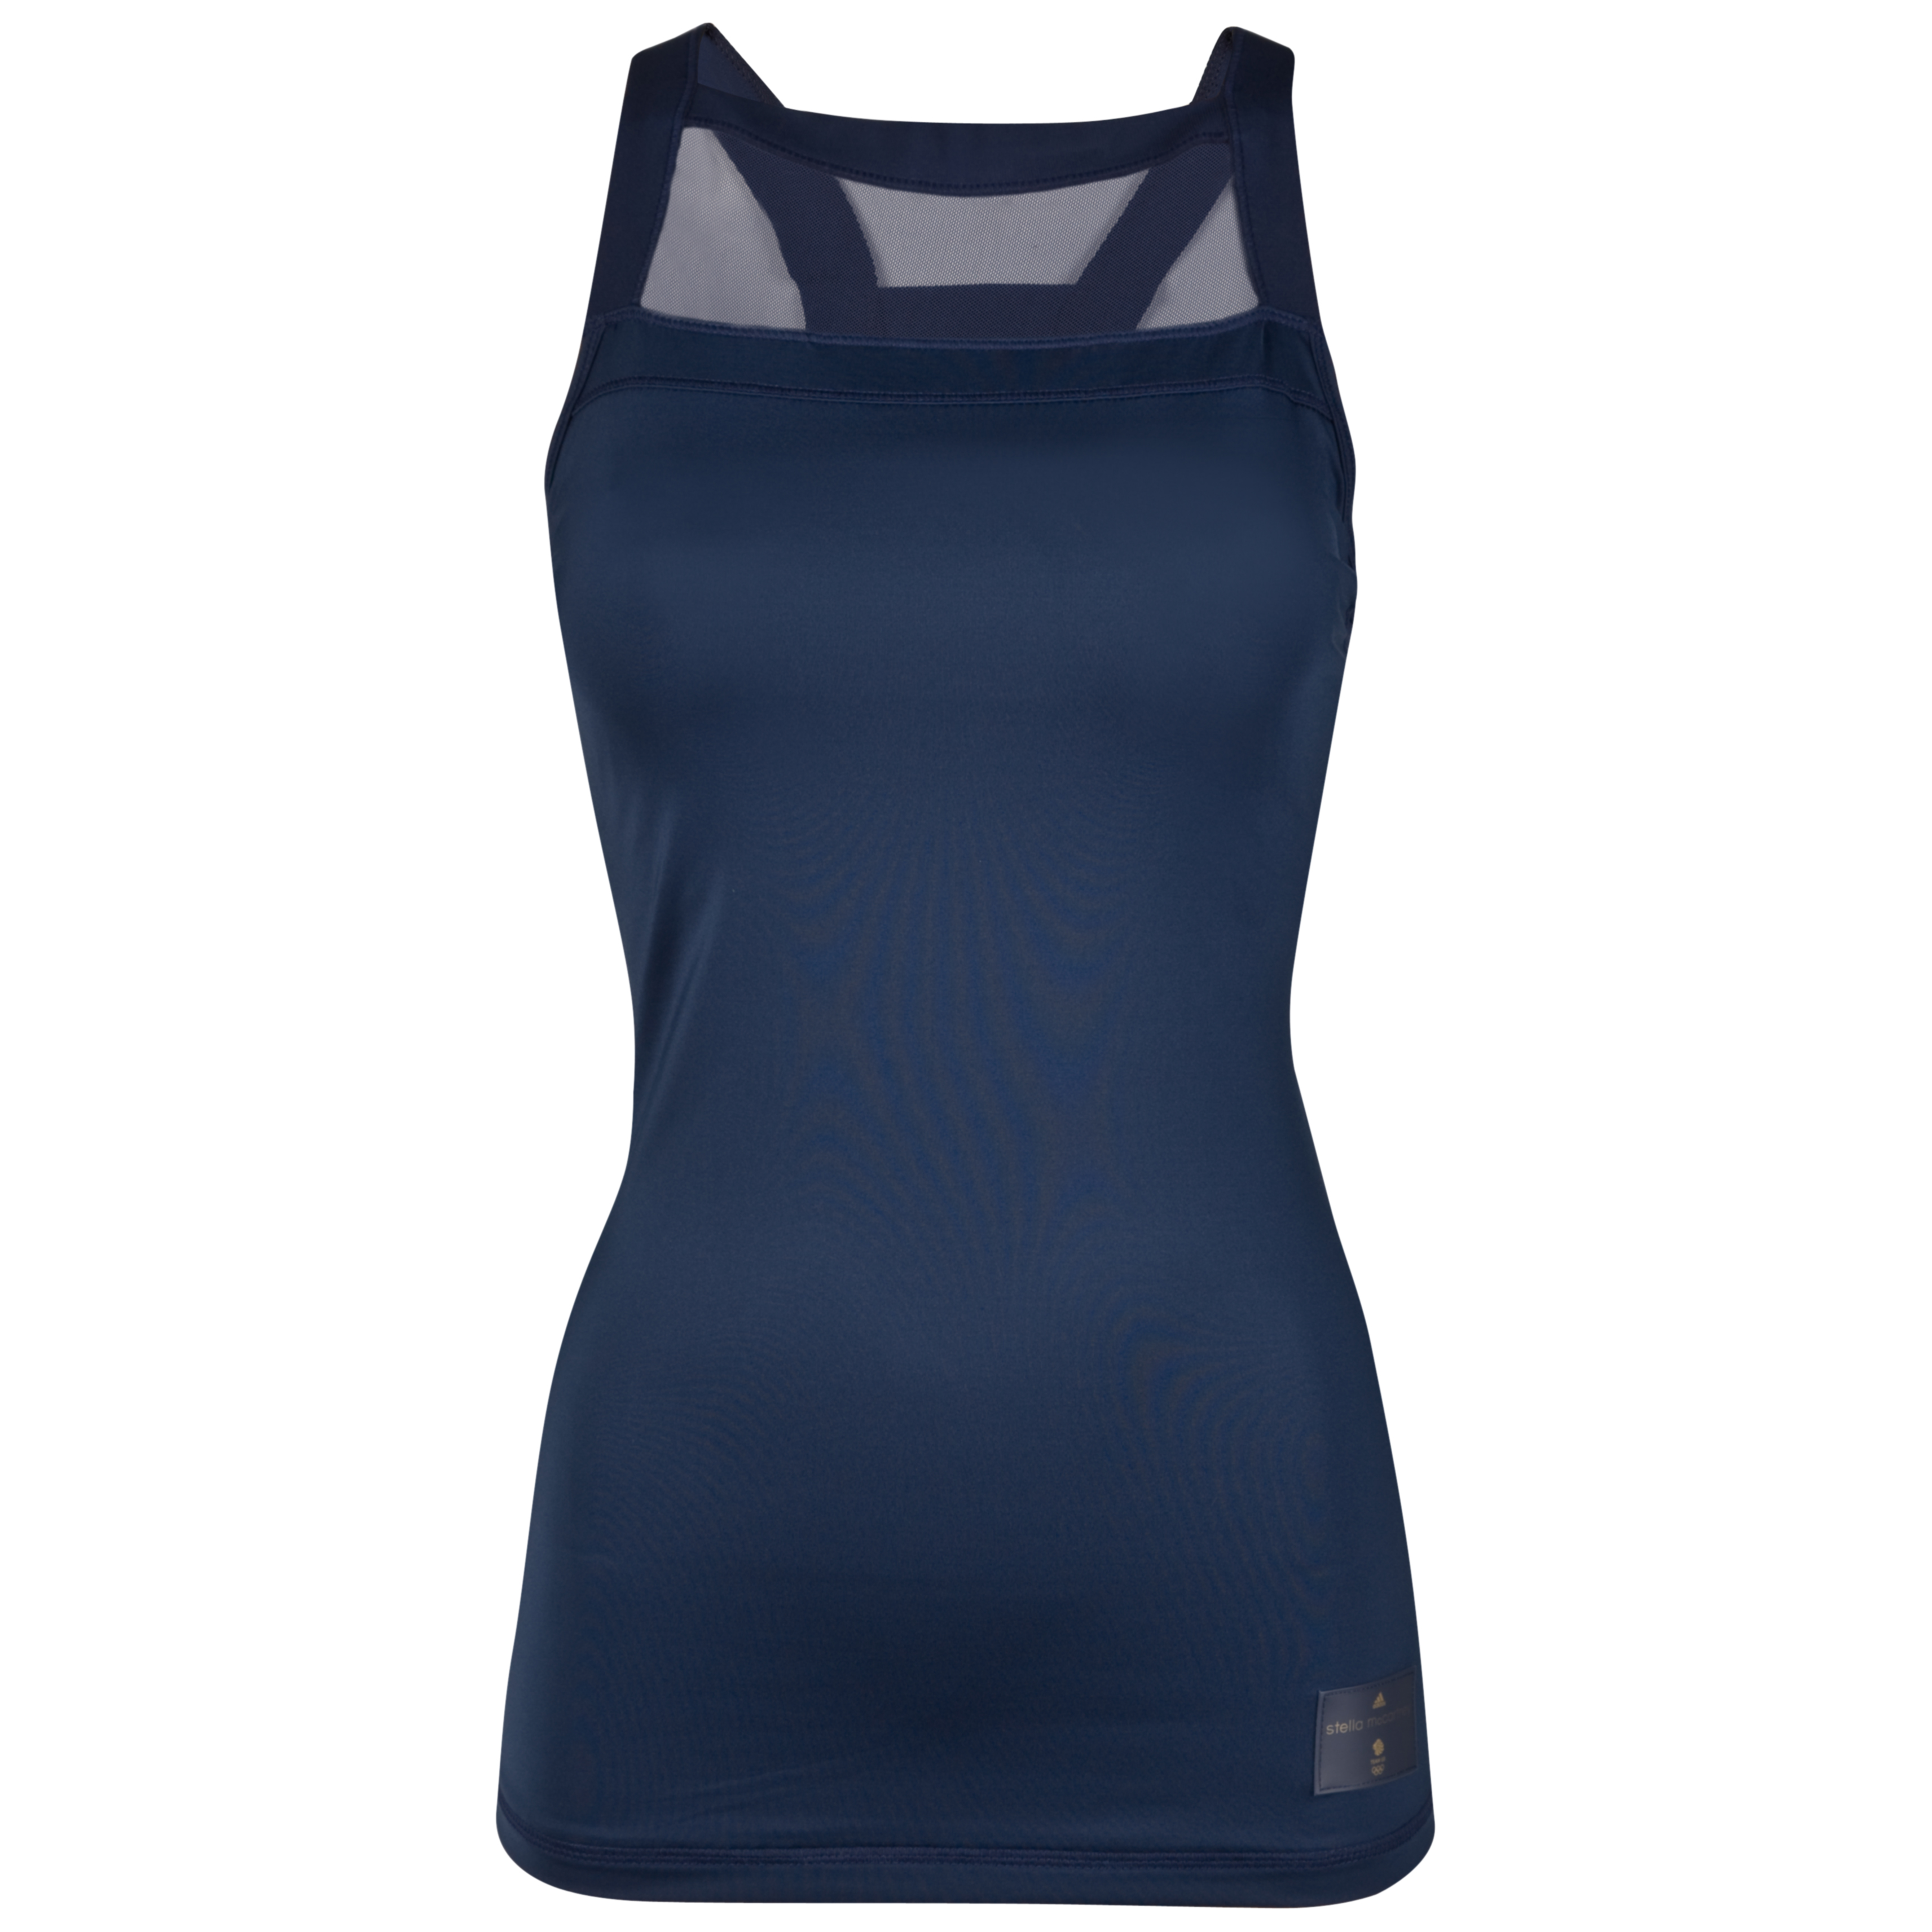 adidas Team GB Running Tank - Dark Indigo/Solid Blue - Womens